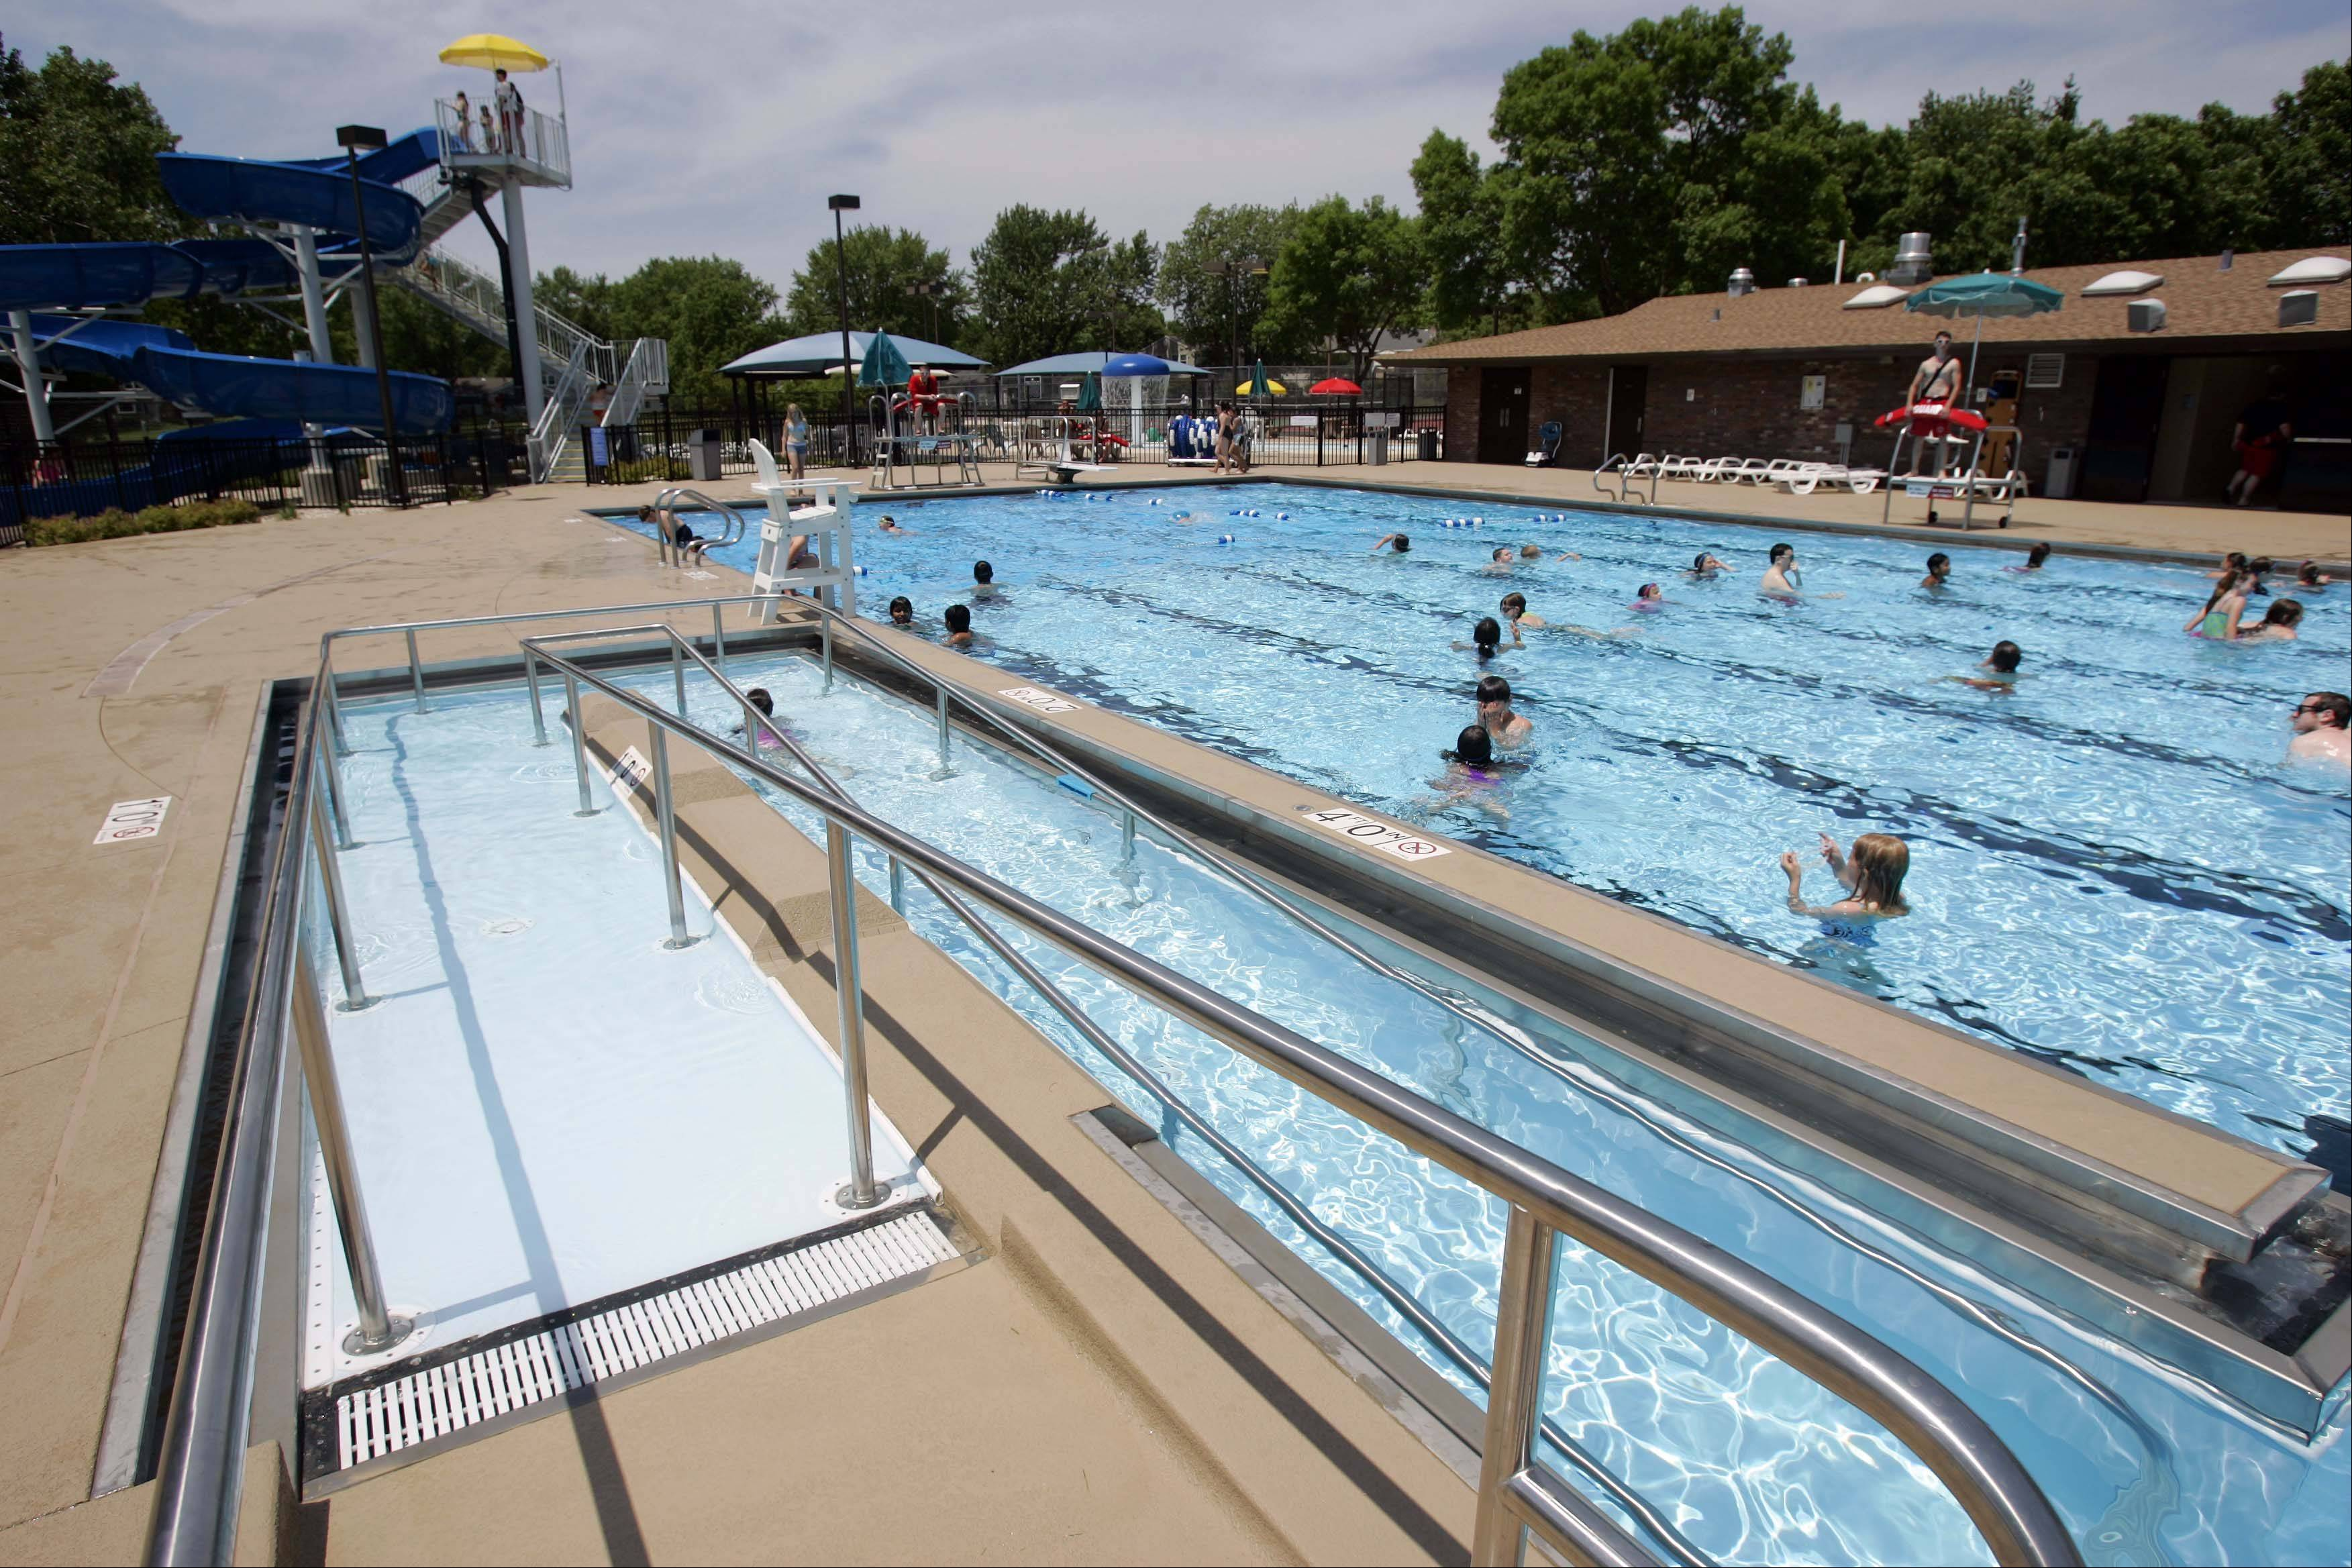 Besides the new slide in the background, Willow Stream Pool has added handicap access to the Buffalo Grove facility.